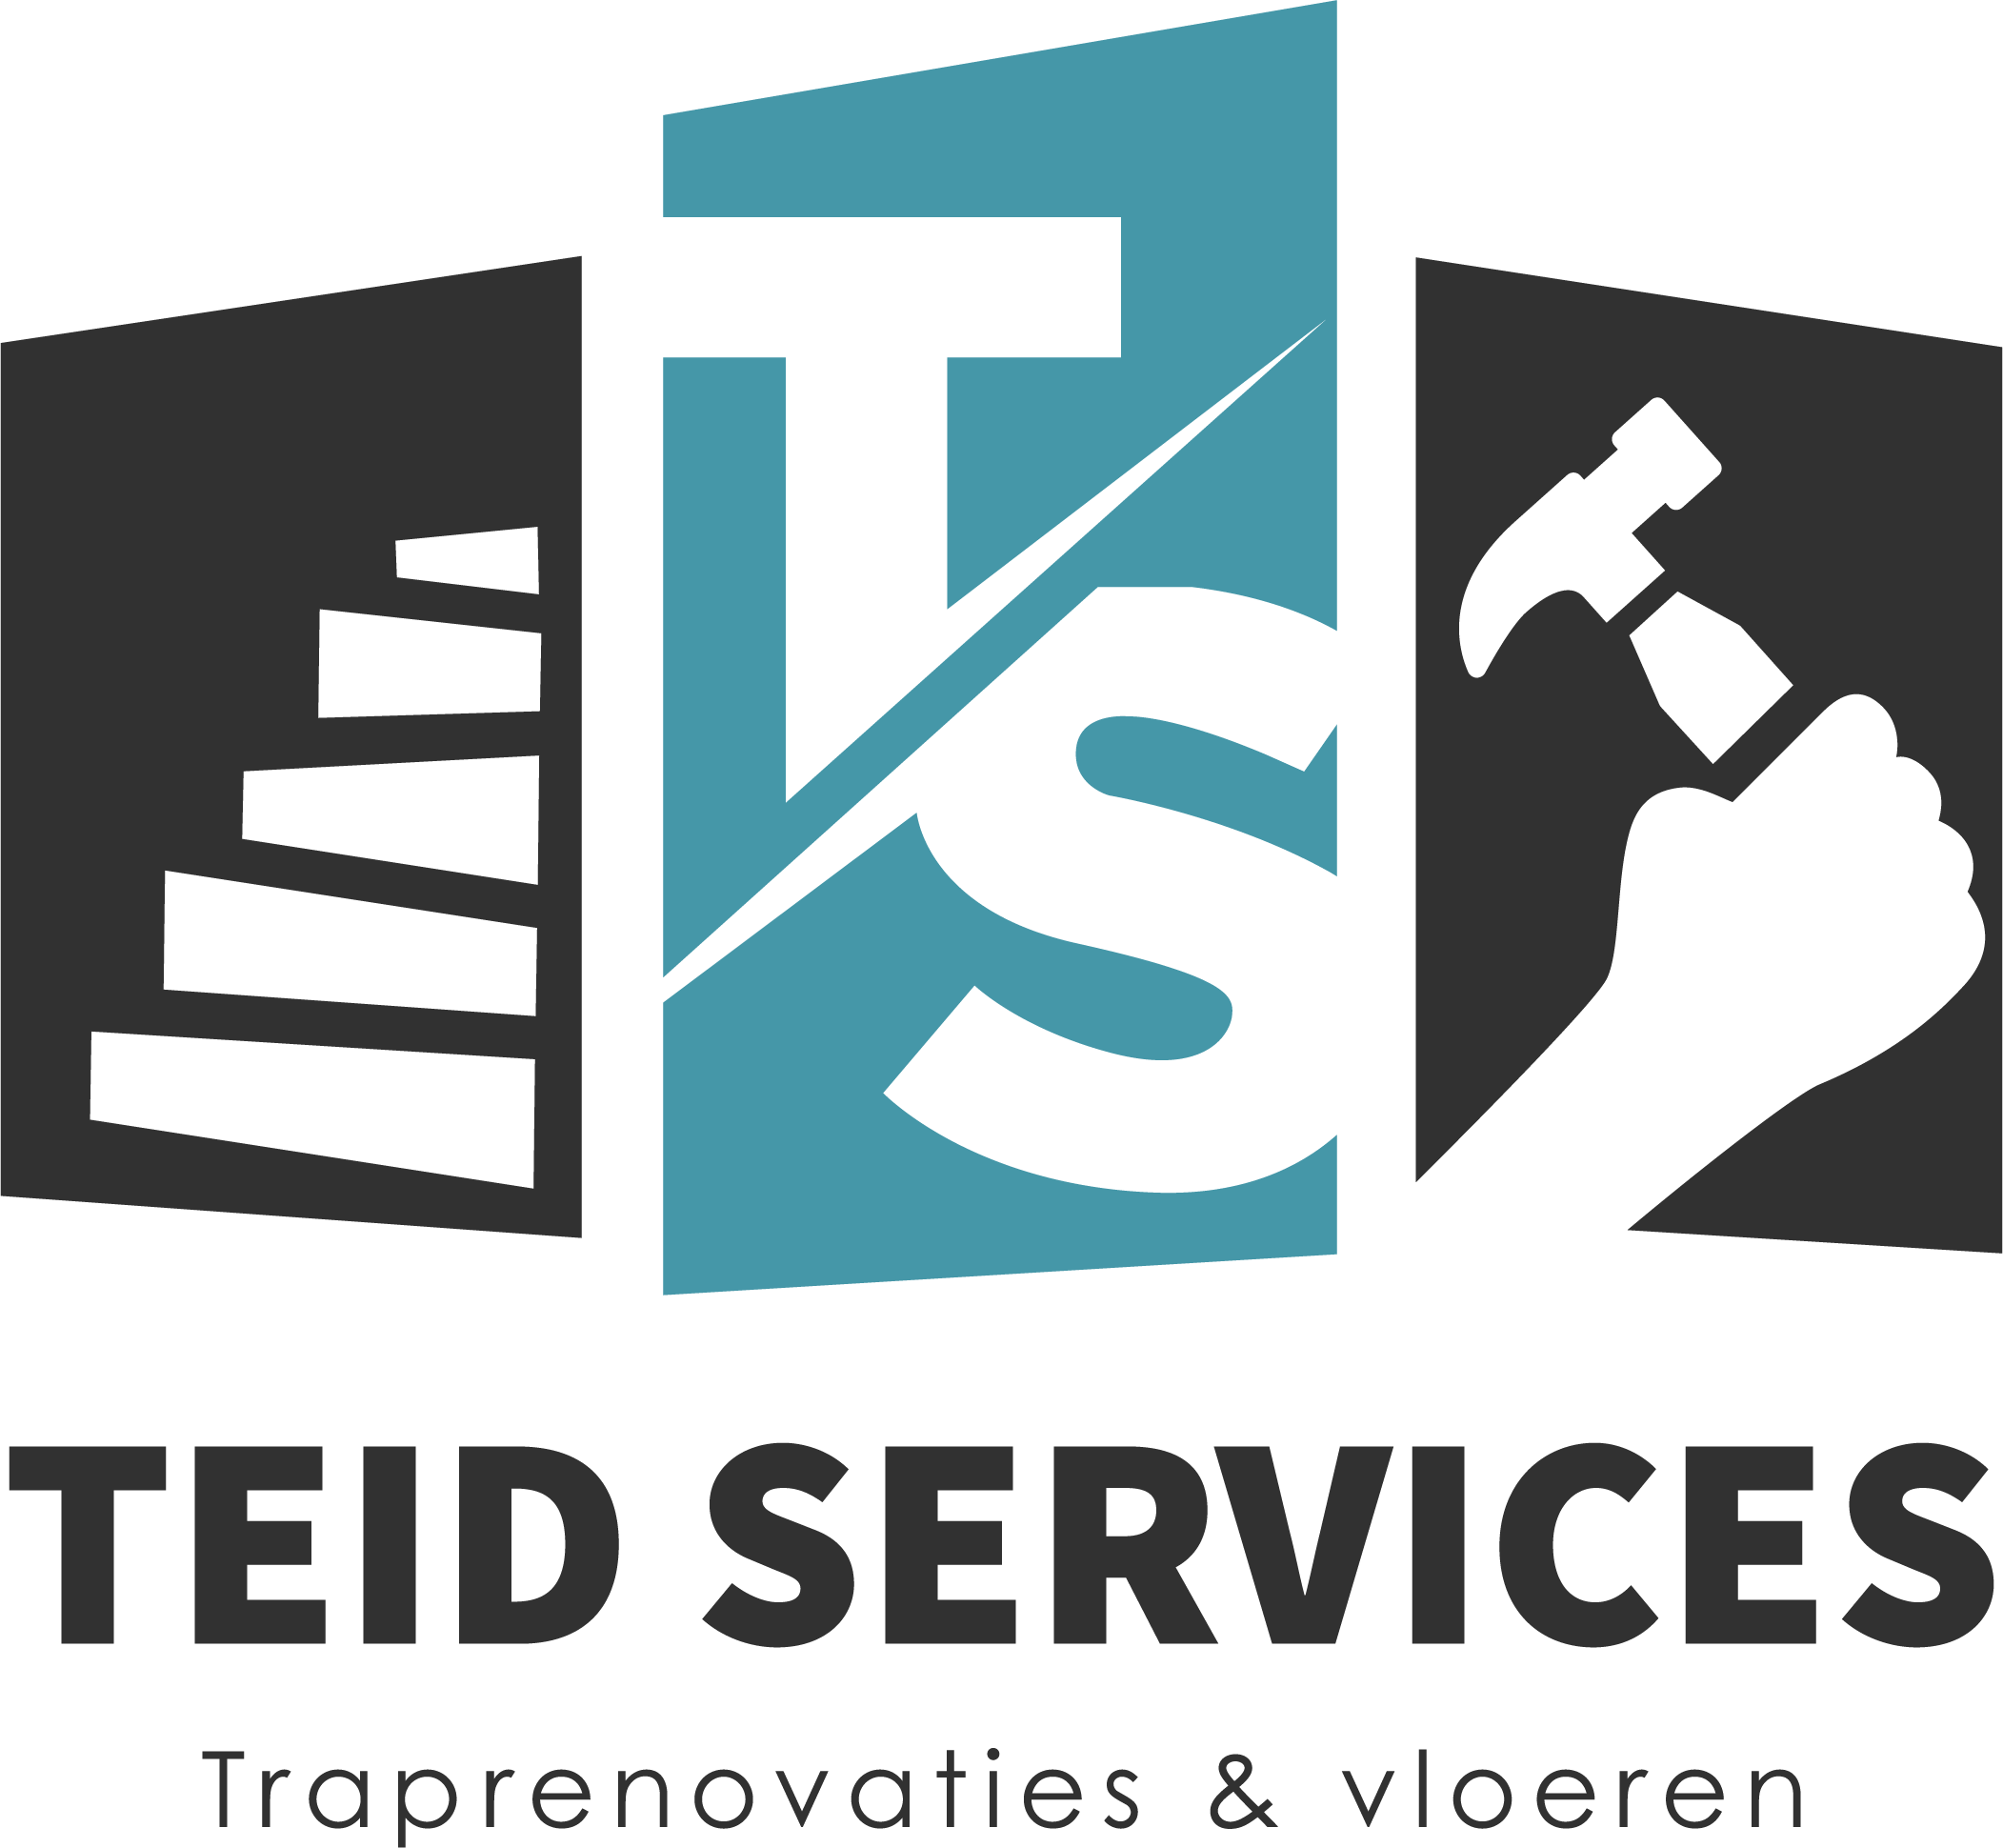 Teidservices.nl